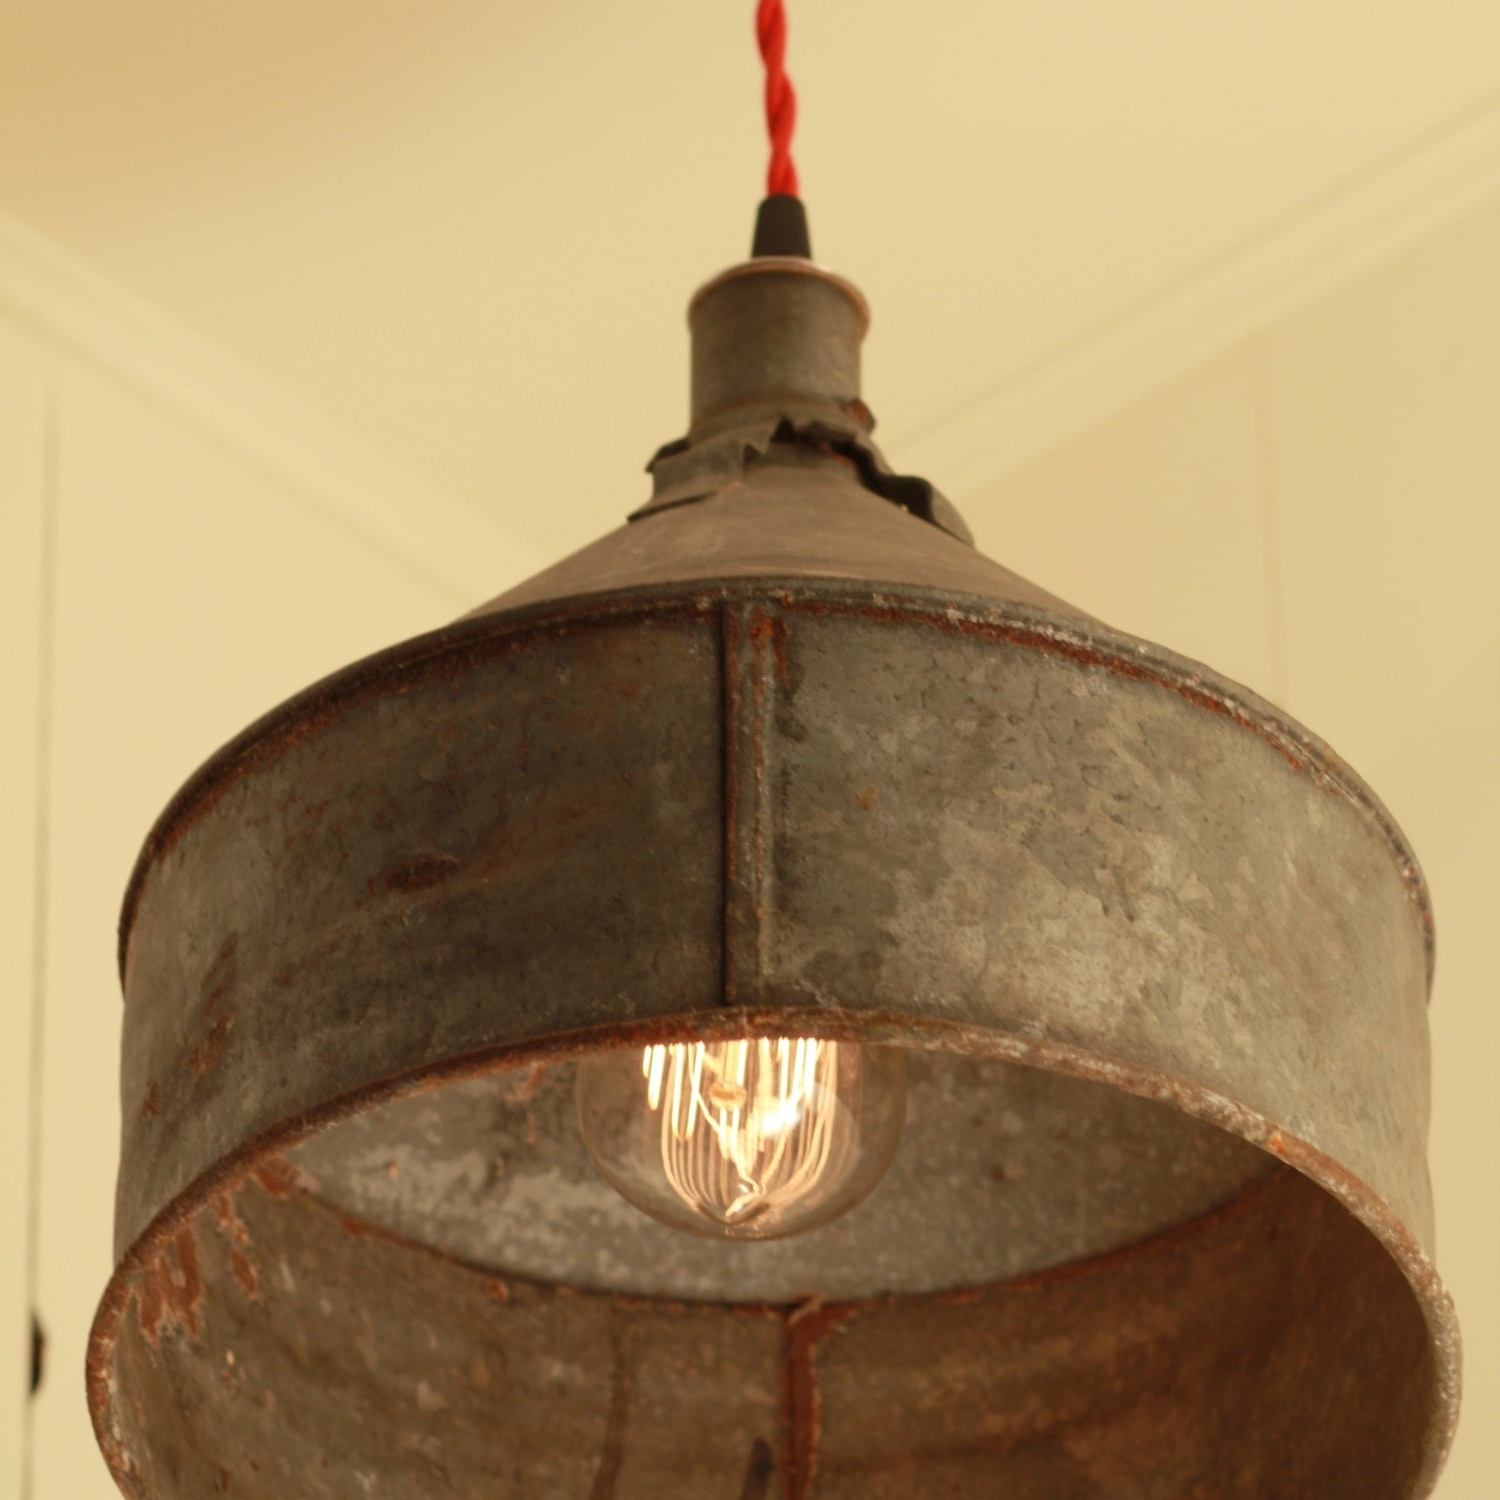 Rustic Outdoor Pendant Lighting Inspirational Trend Rustic Light Intended For Best And Newest Rustic Outdoor Ceiling Lights (View 16 of 20)